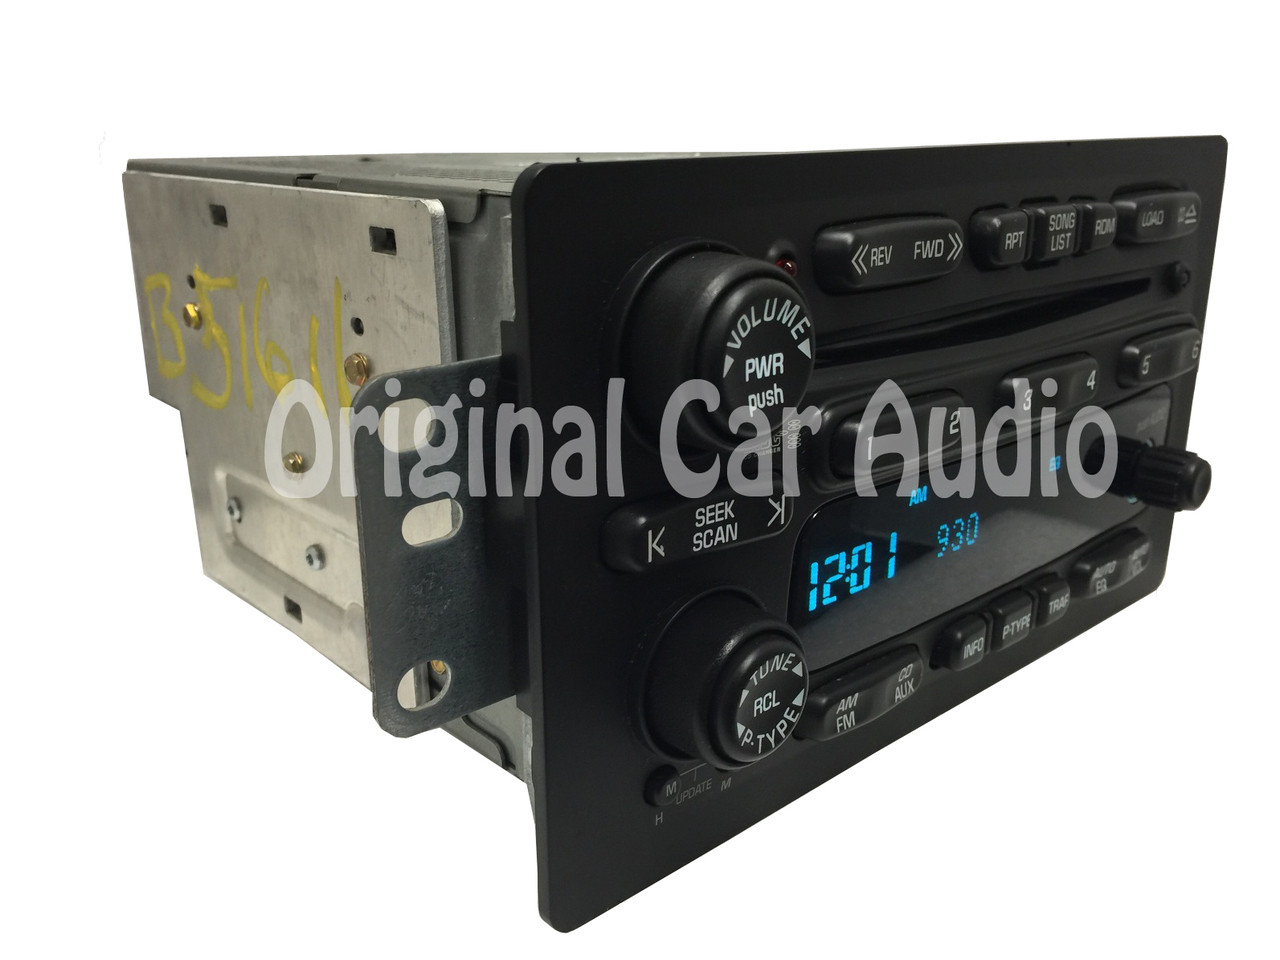 chevy gmc radio 6 disc cd changer stereo aux oem  [ 1280 x 960 Pixel ]